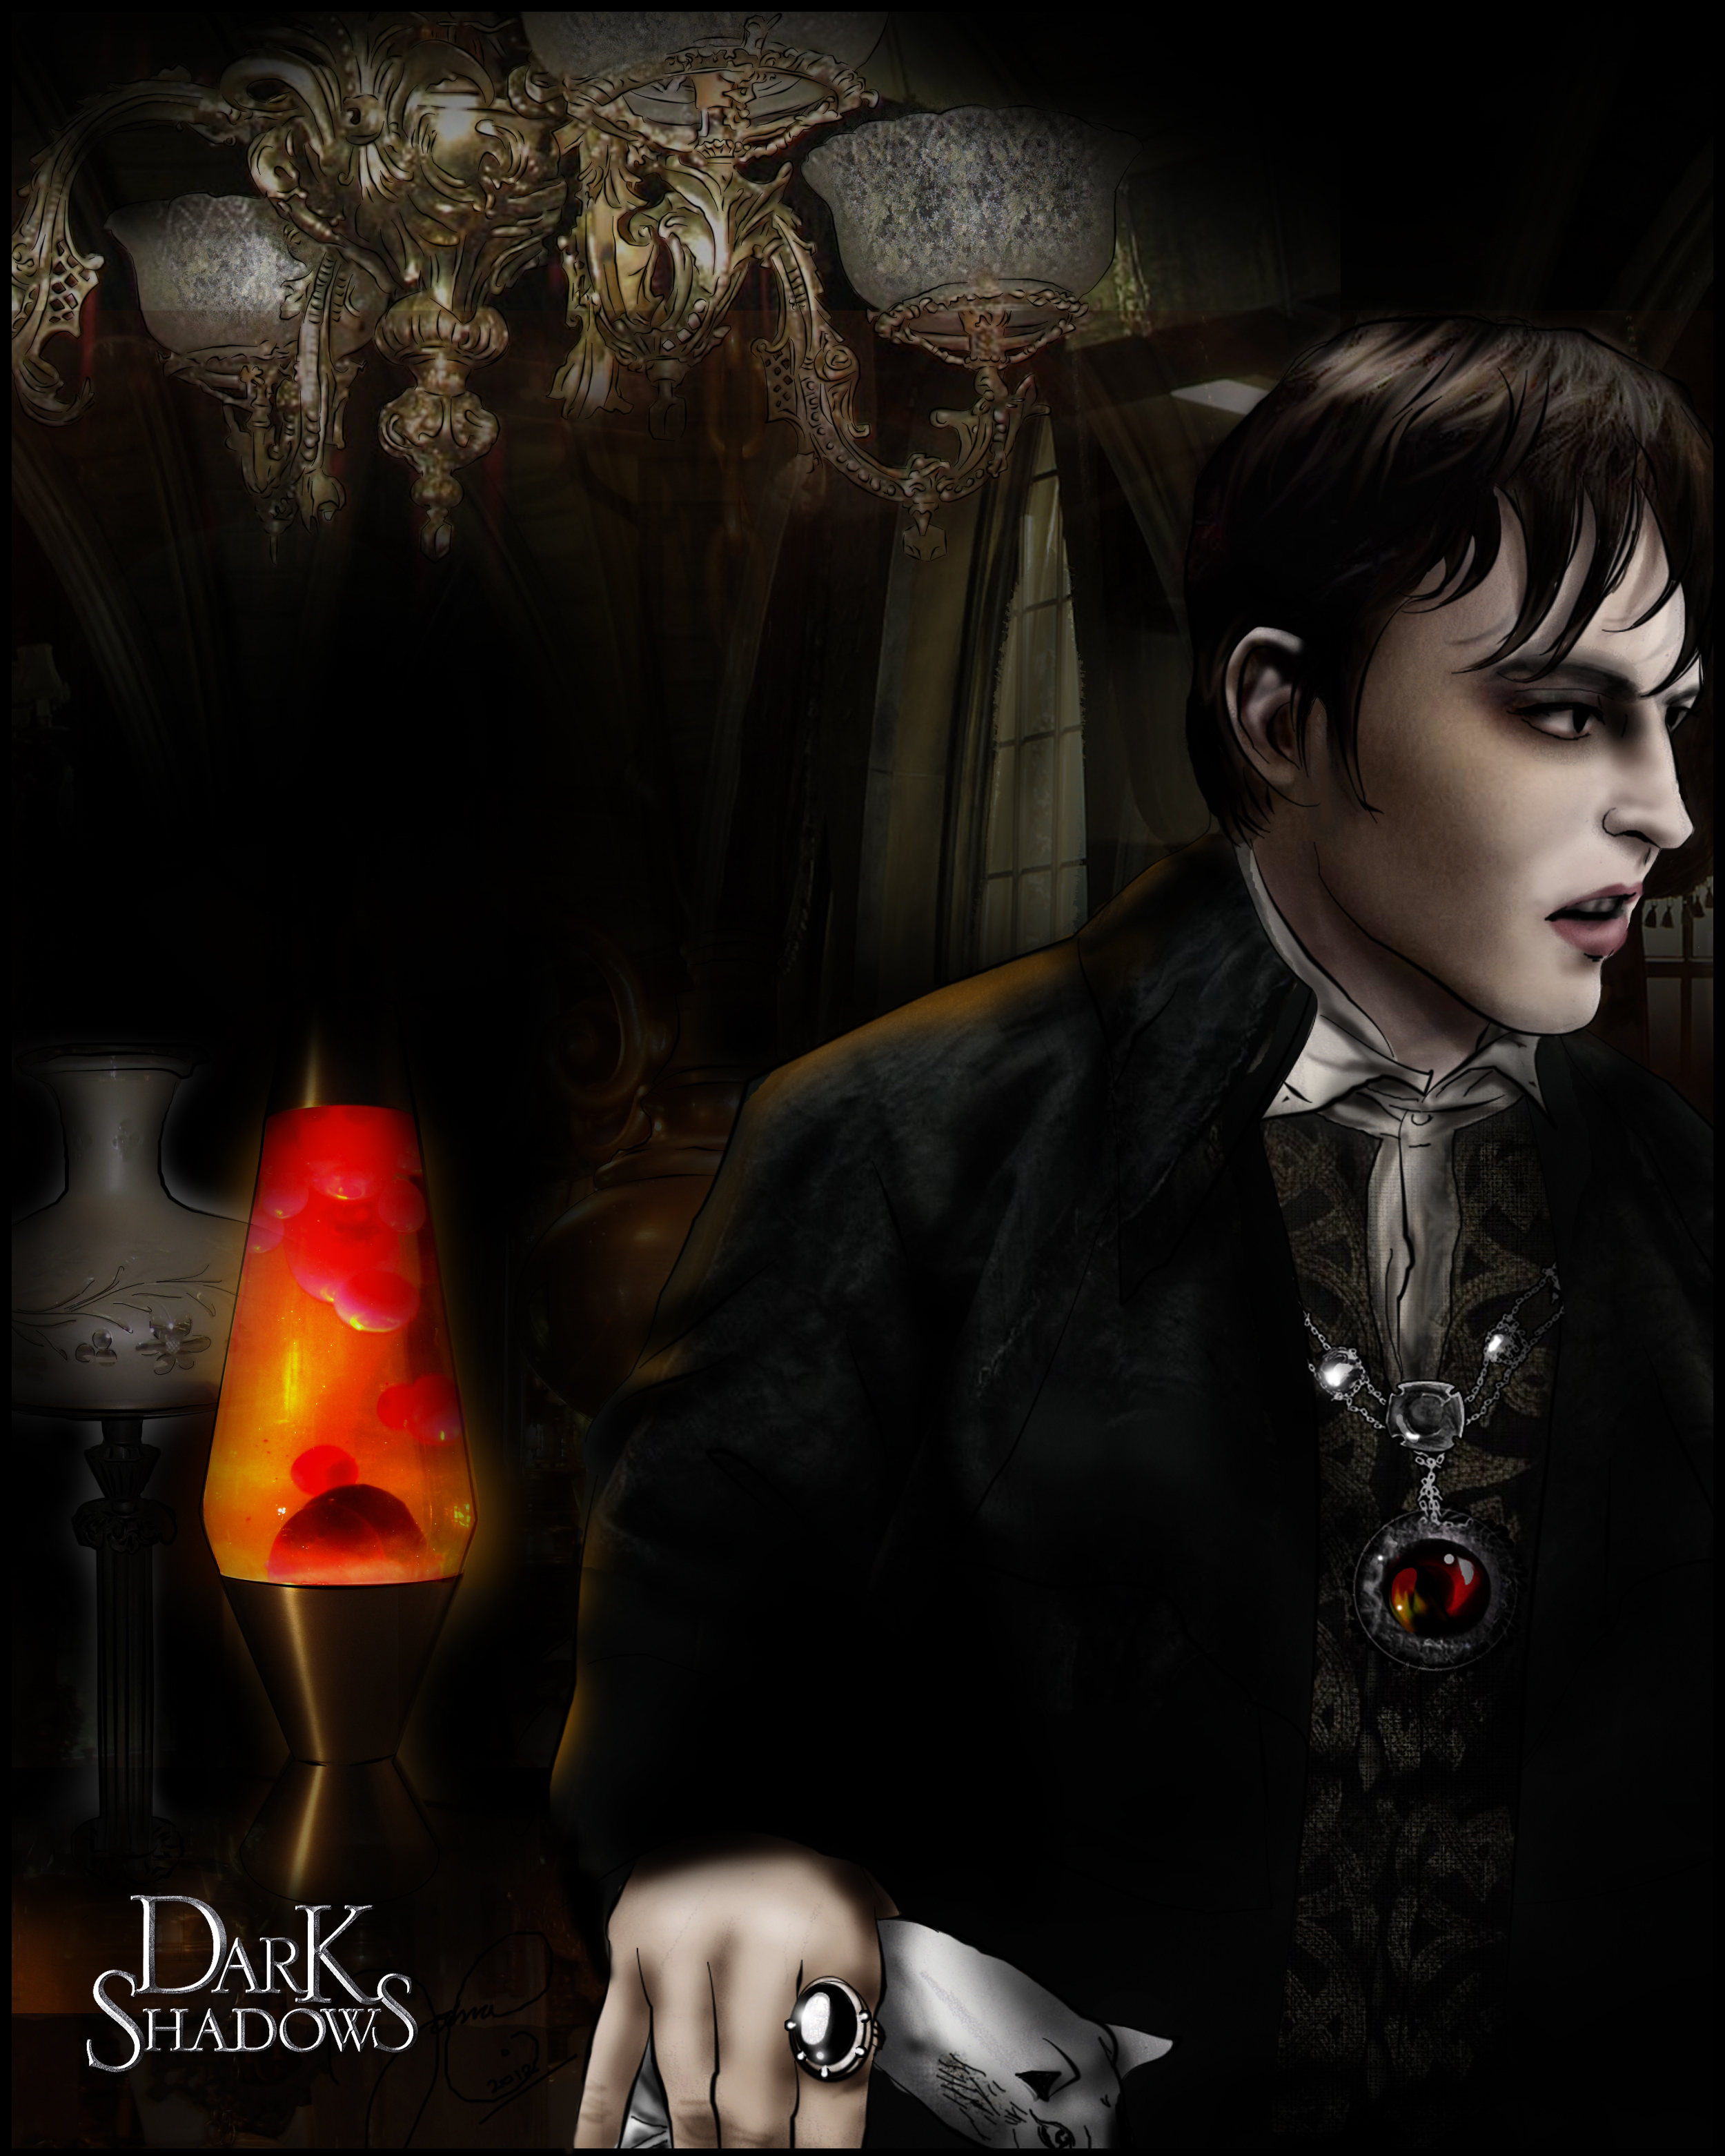 -dark shadows: the old and the new- by runty